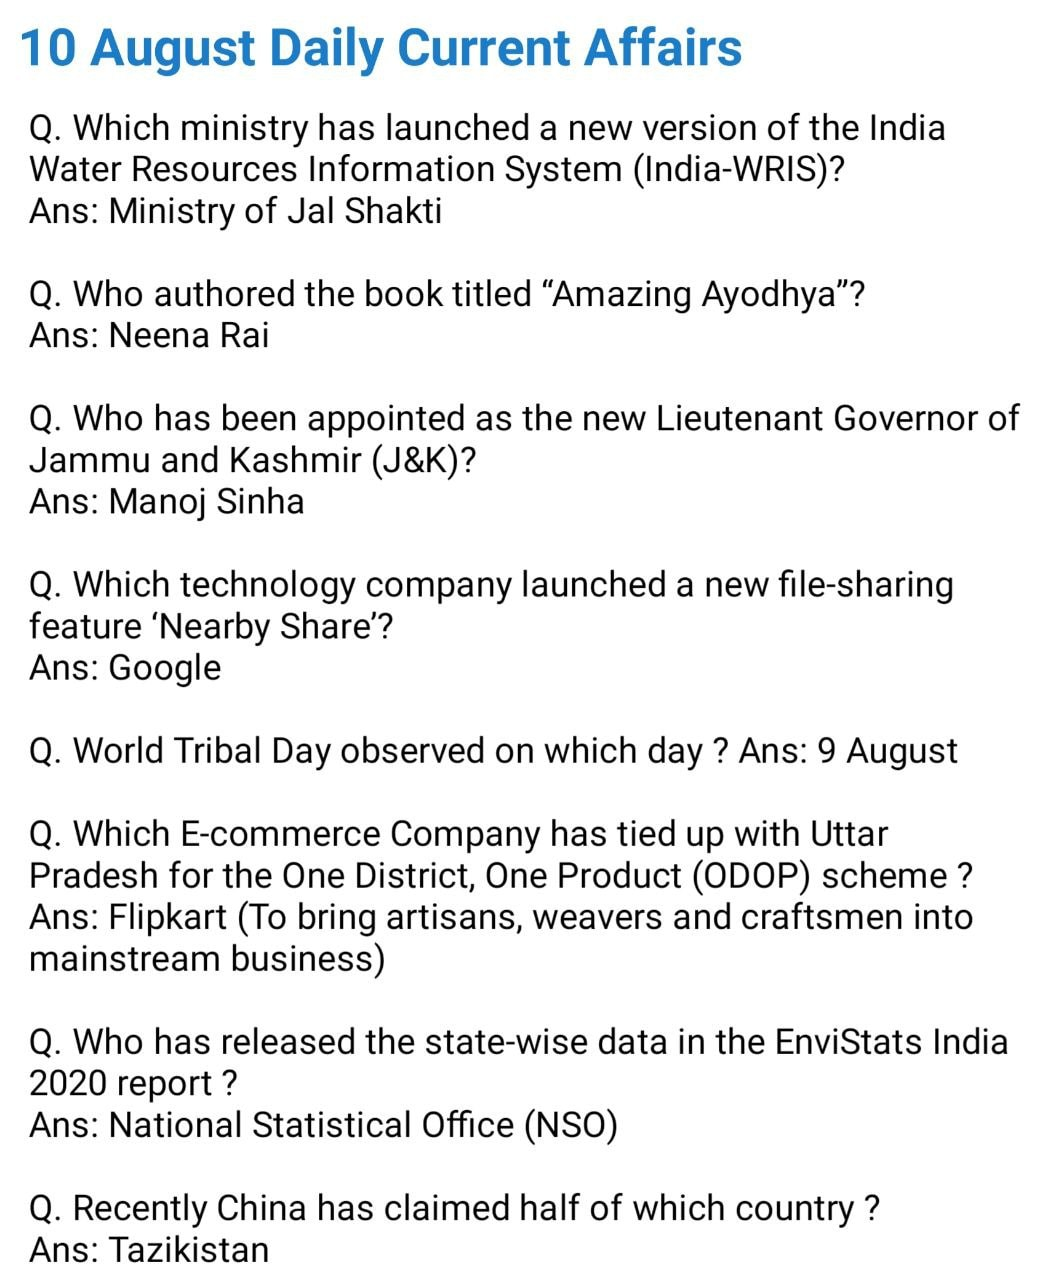 Daily Current Affairs 10 August 2020